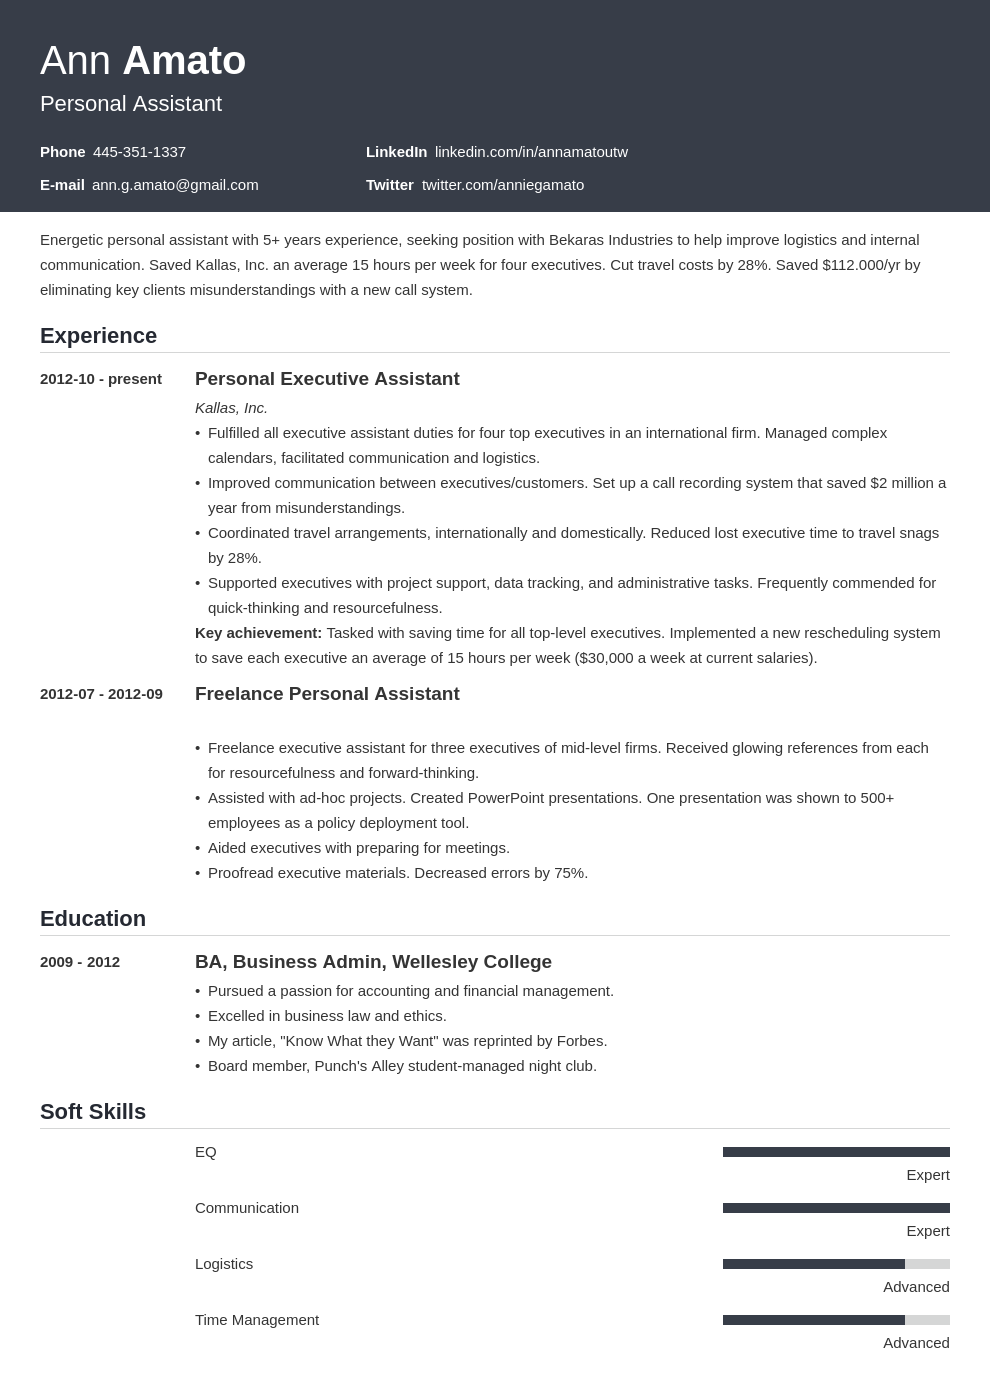 Job hunting resume preparation articles cheap creative essay writers website for school